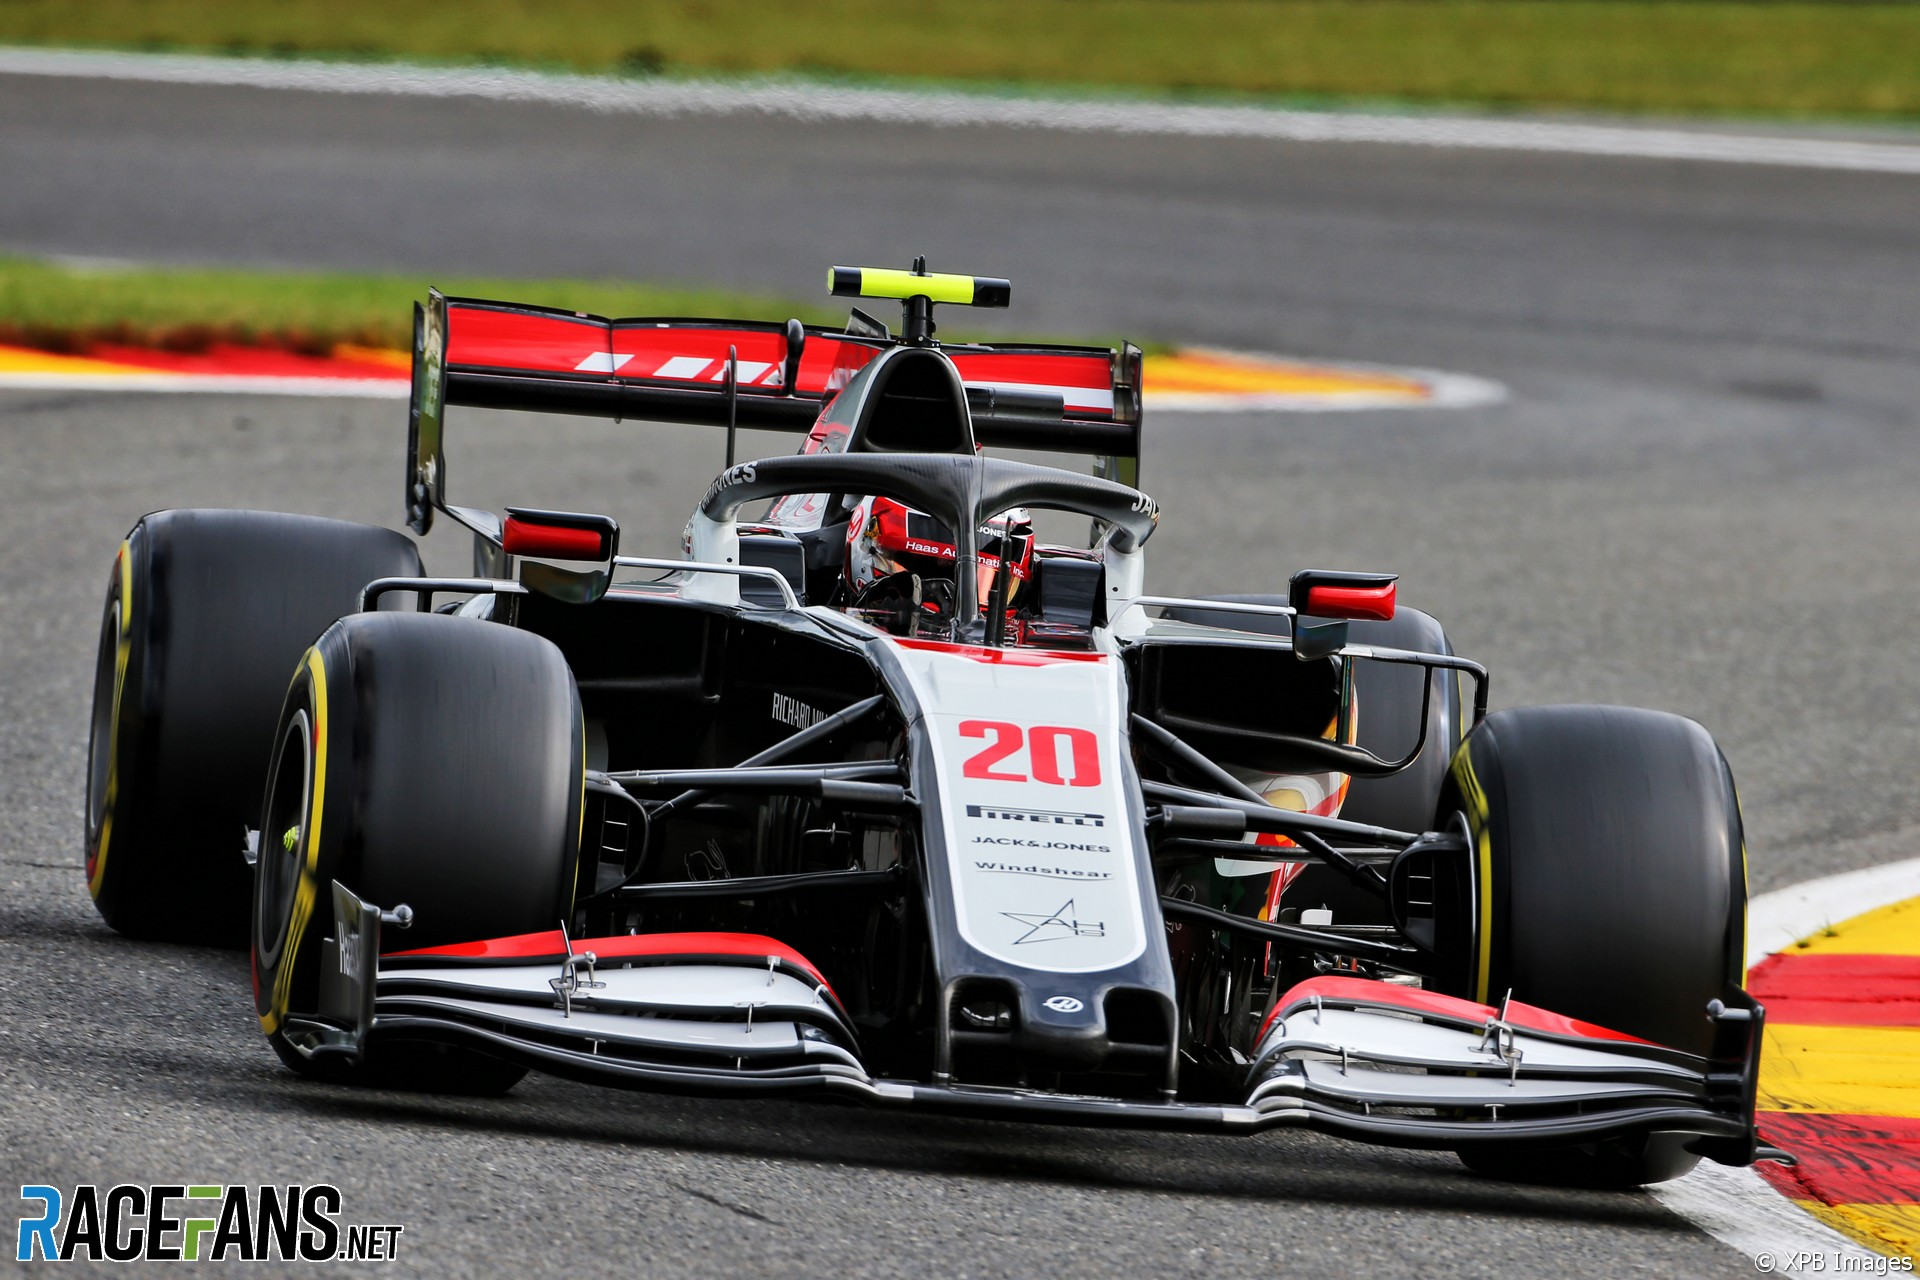 Kevin Magnussen, Haas, Spa-Francorchamps, 2020